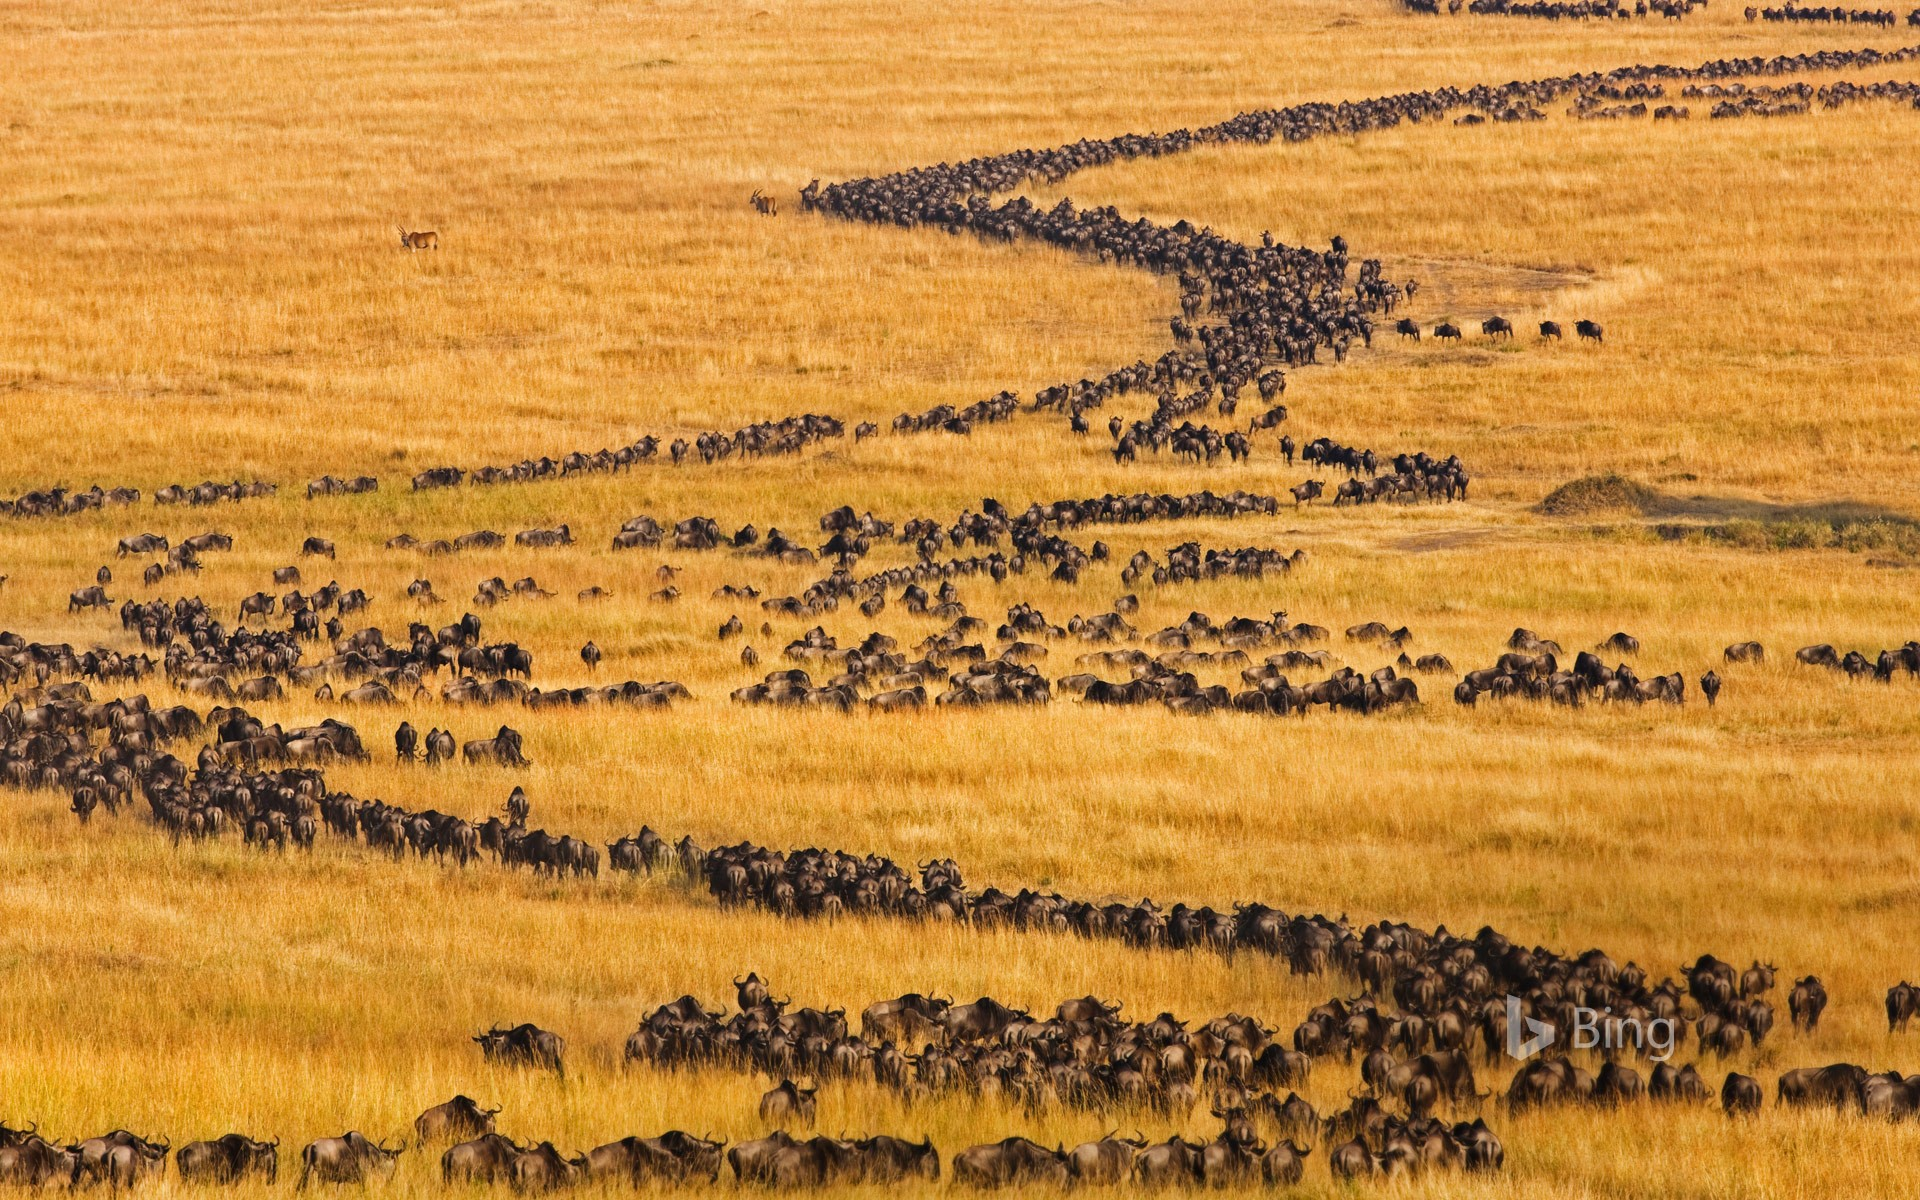 Blue wildebeests on the move for their annual migration in Maasai Mara, Kenya